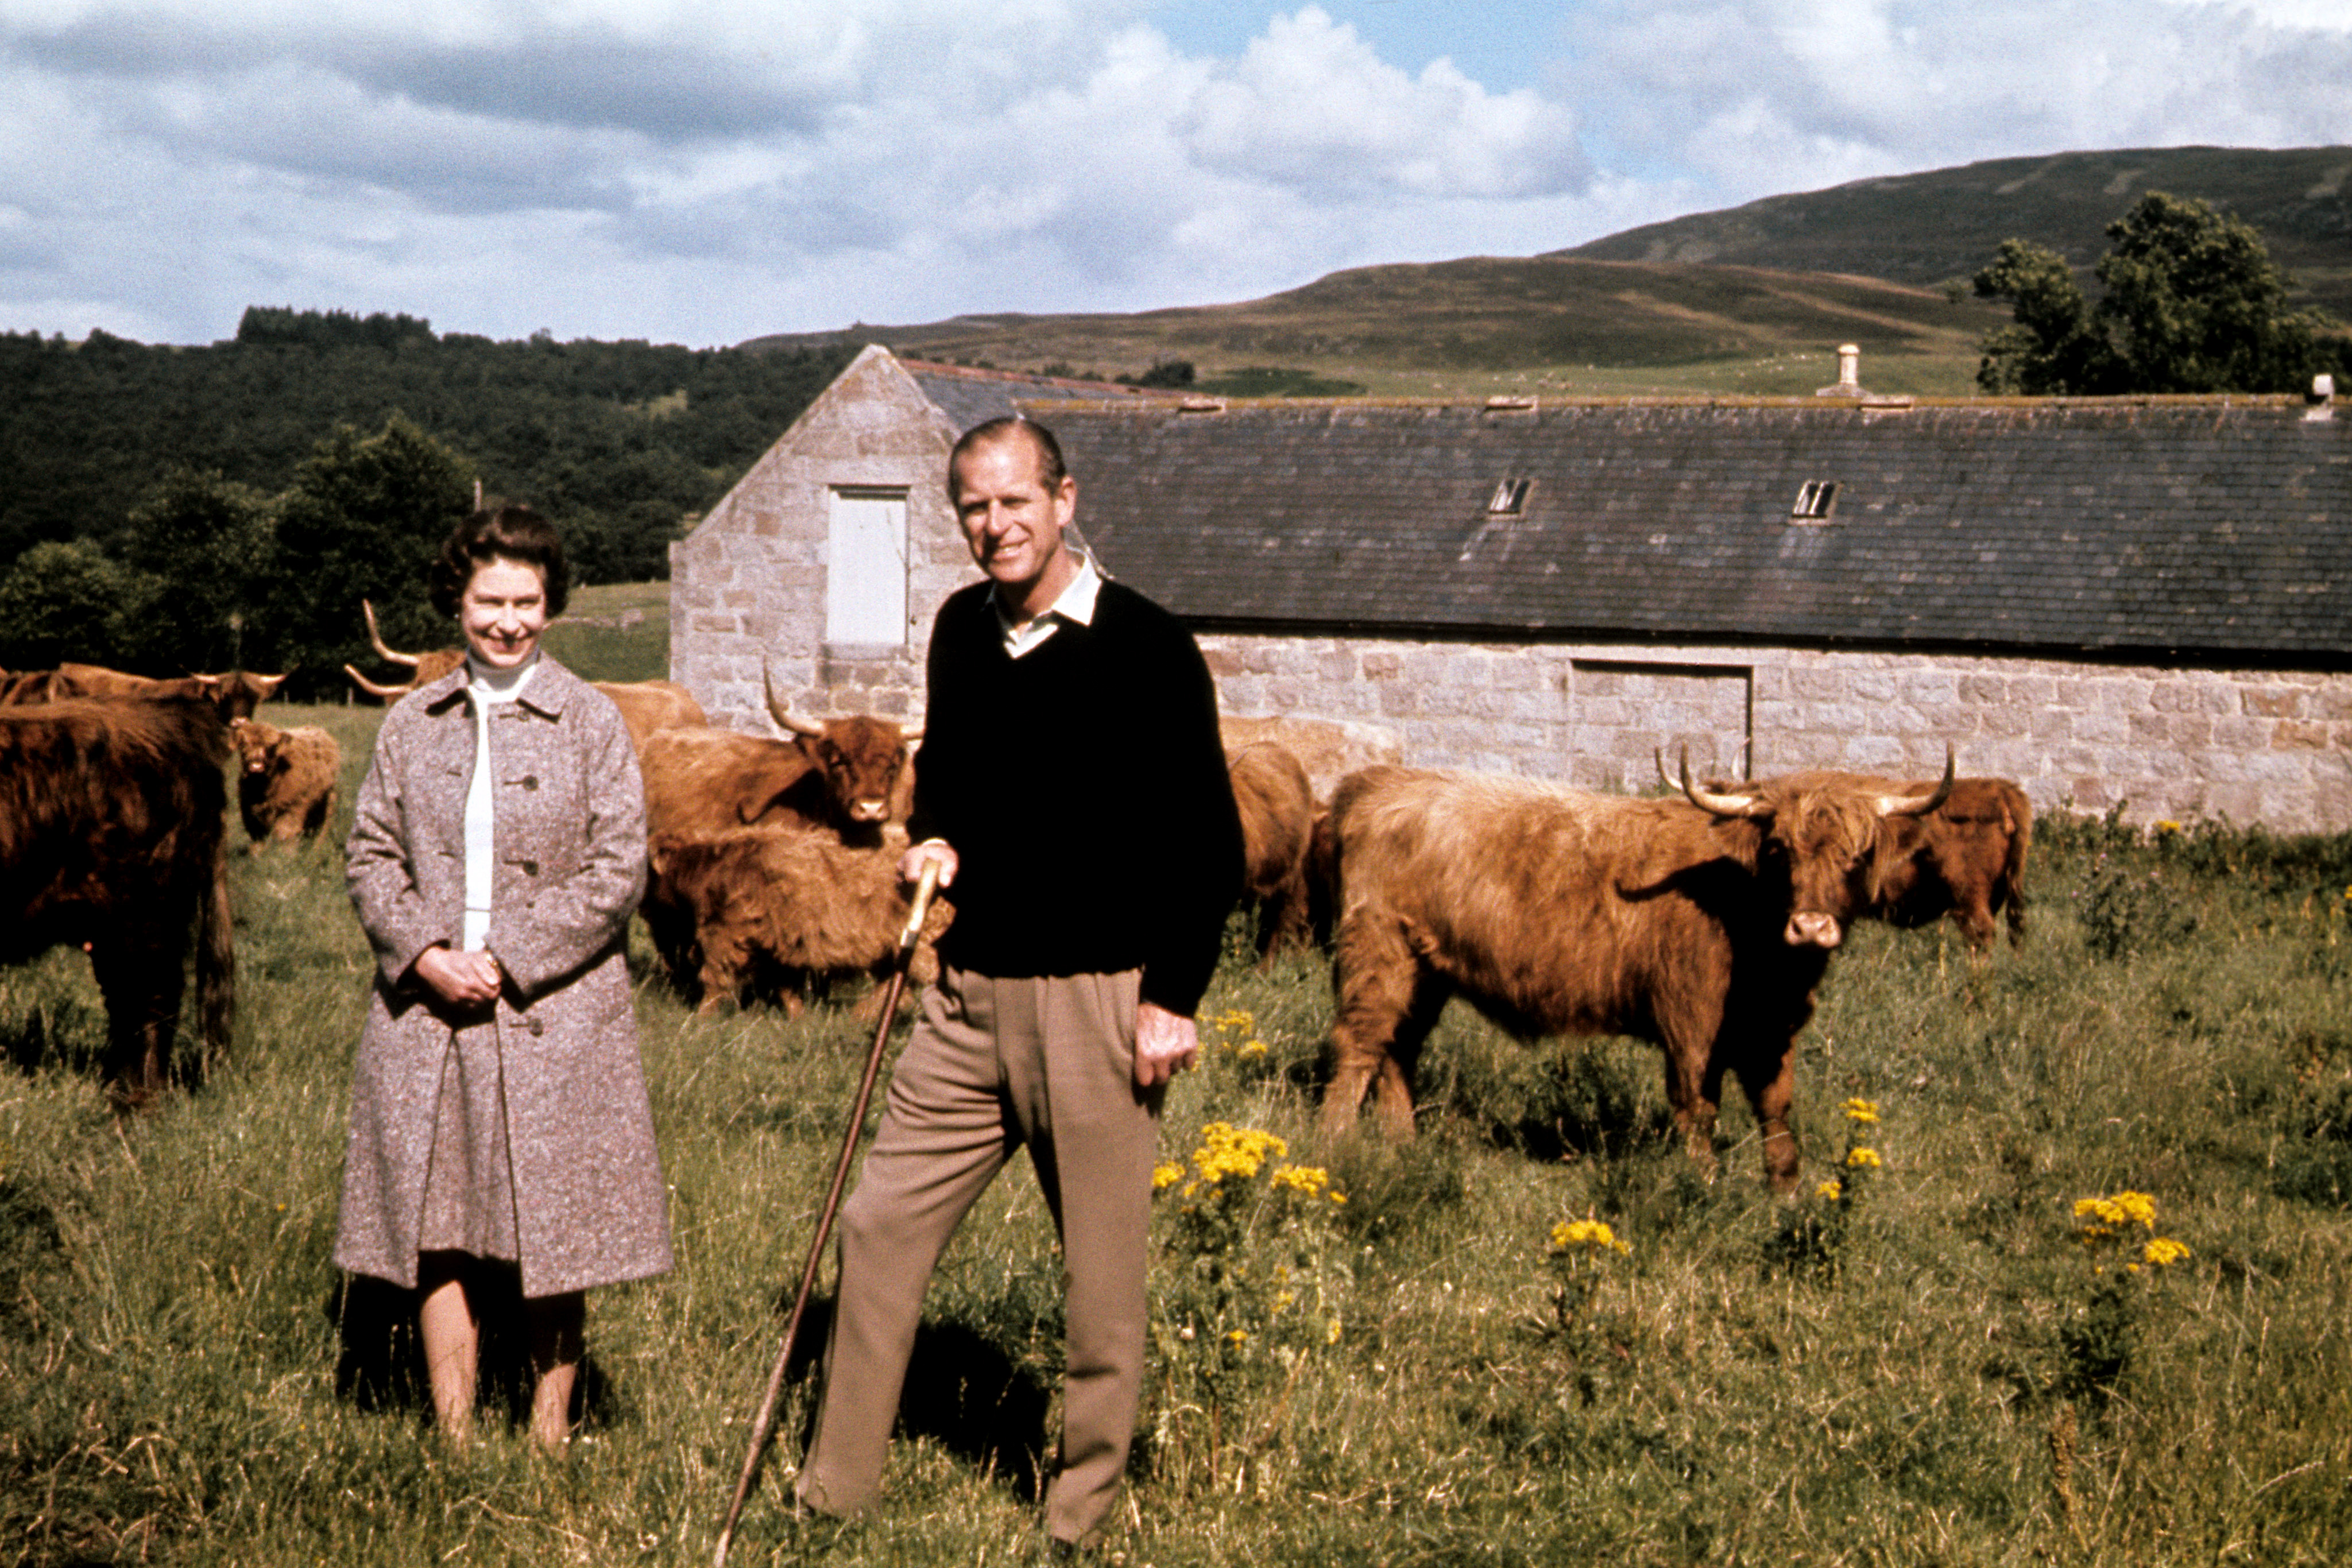 The Queen's cows are so pampered they sleep on waterbeds